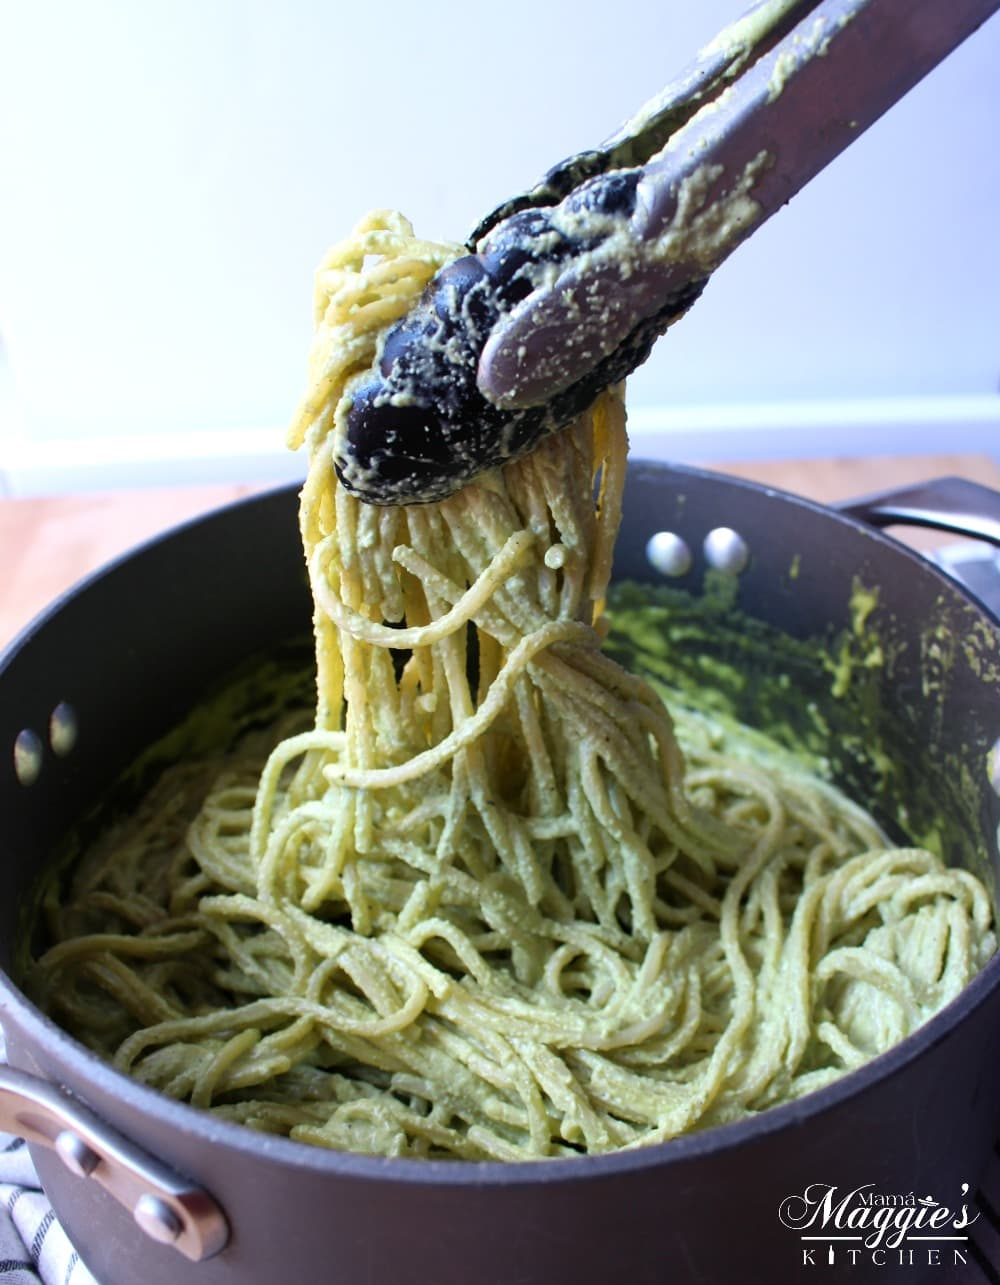 Tongs lifting spaghetti that has been mixed with the creamy poblano sauce.